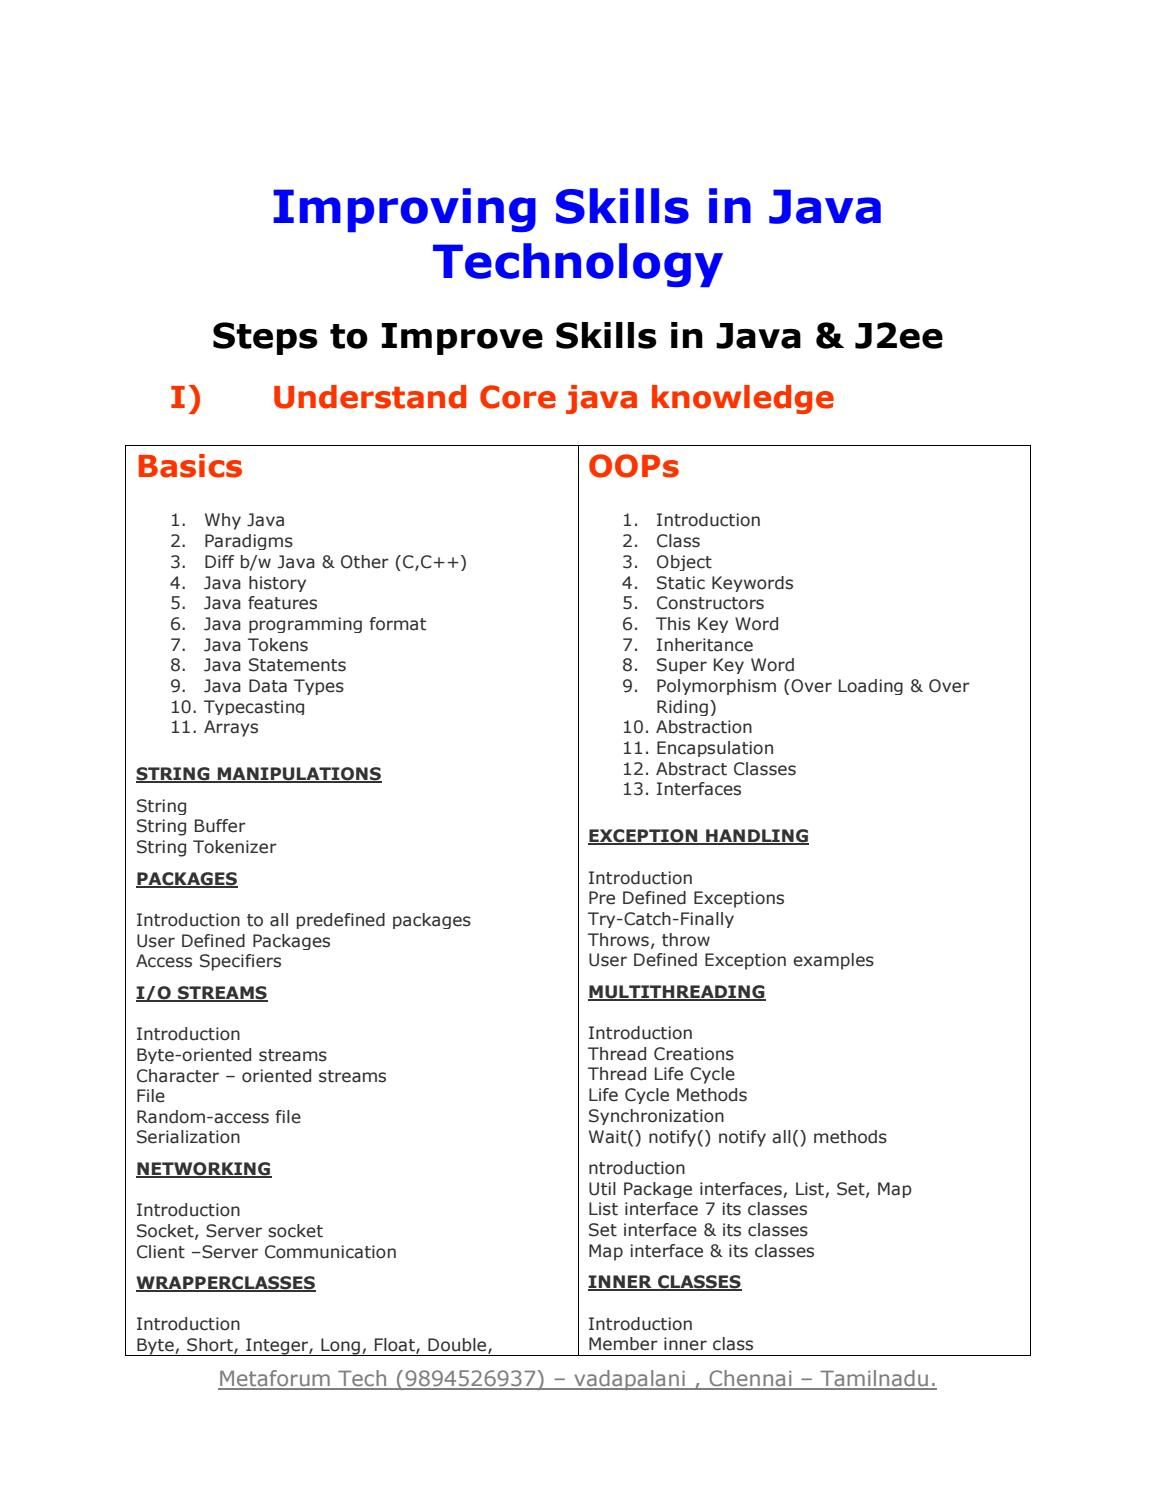 Best Java And J2ee Training Institute In Chennai In 2020 Object